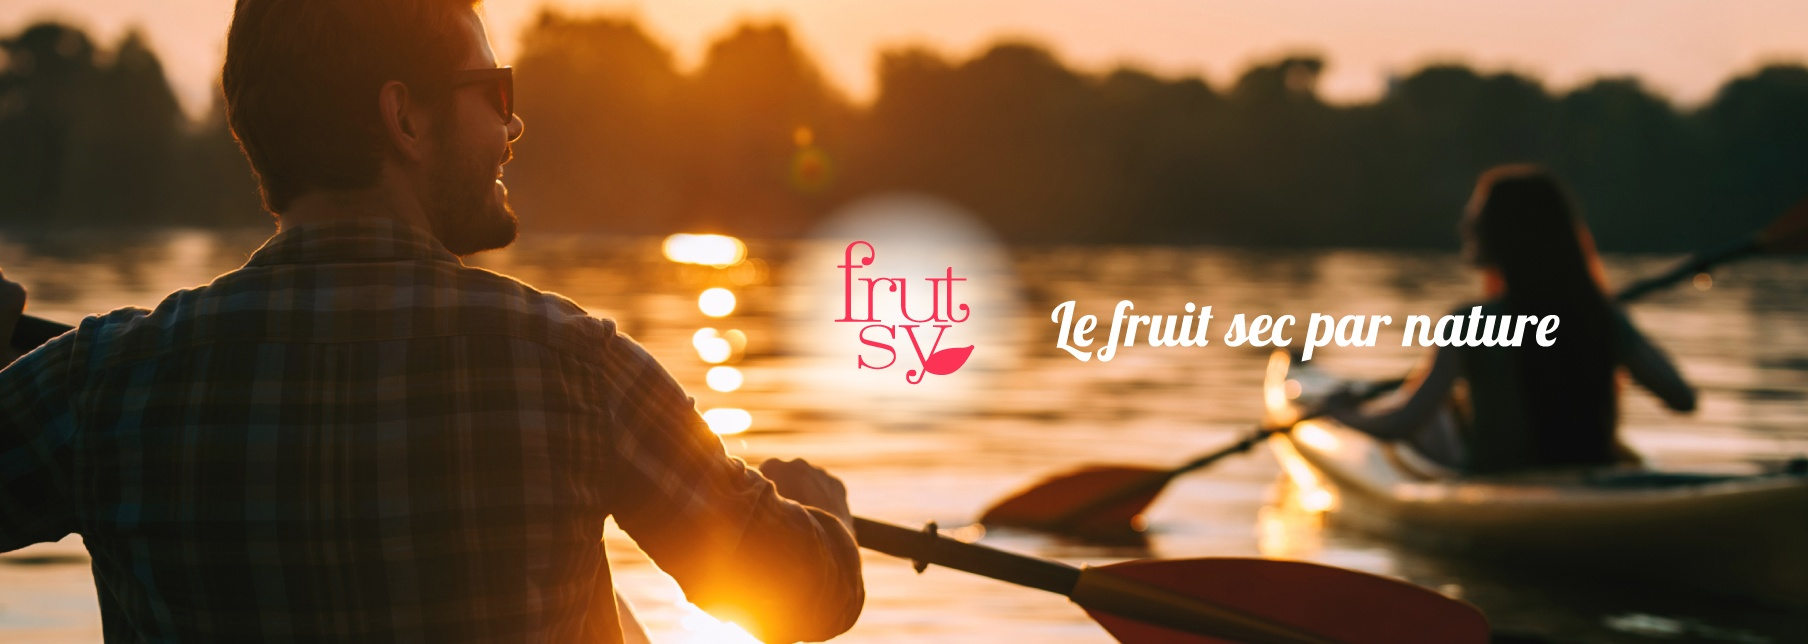 https://www.frutsy.fr/wp-content/uploads/2020/09/le-fruit-sec-par-nature.jpg